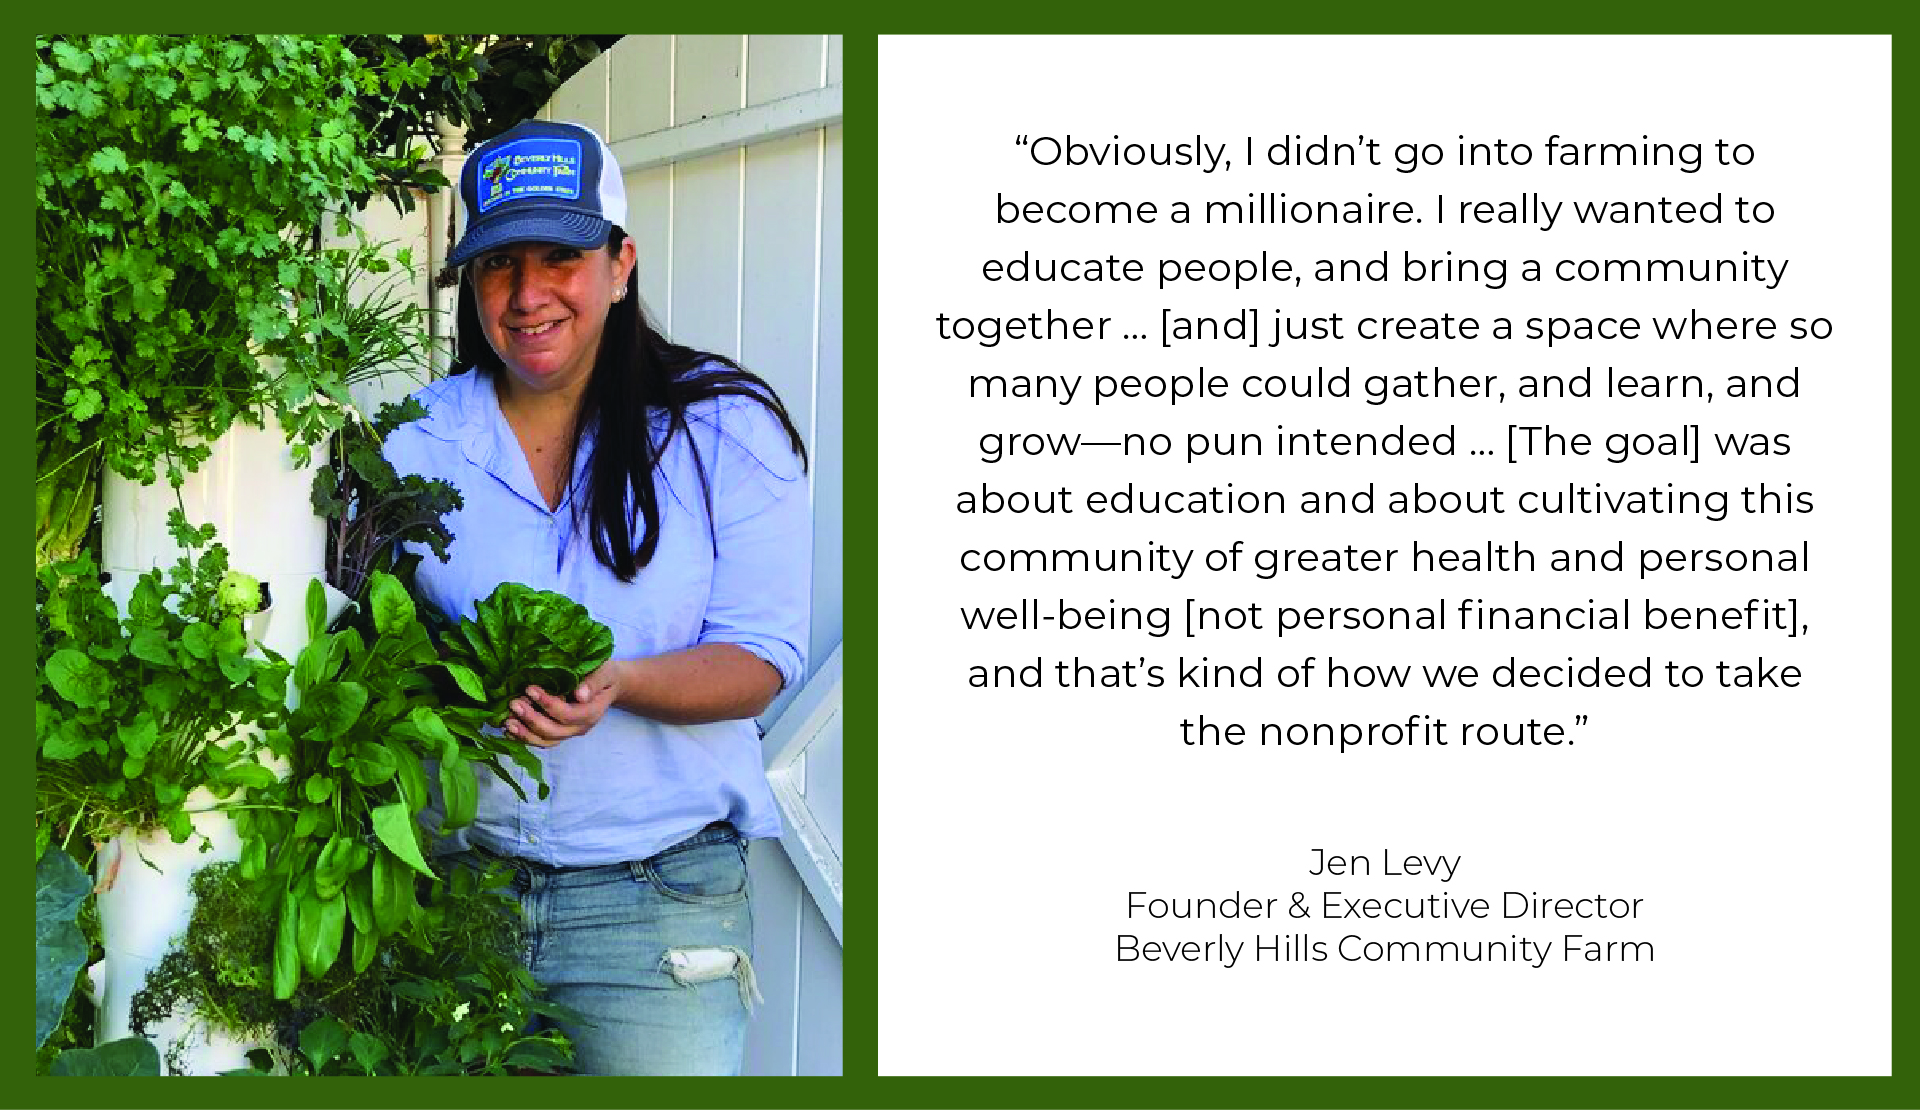 Jen Levy - Founder & Executive Director of Beverly Hills Community Farm